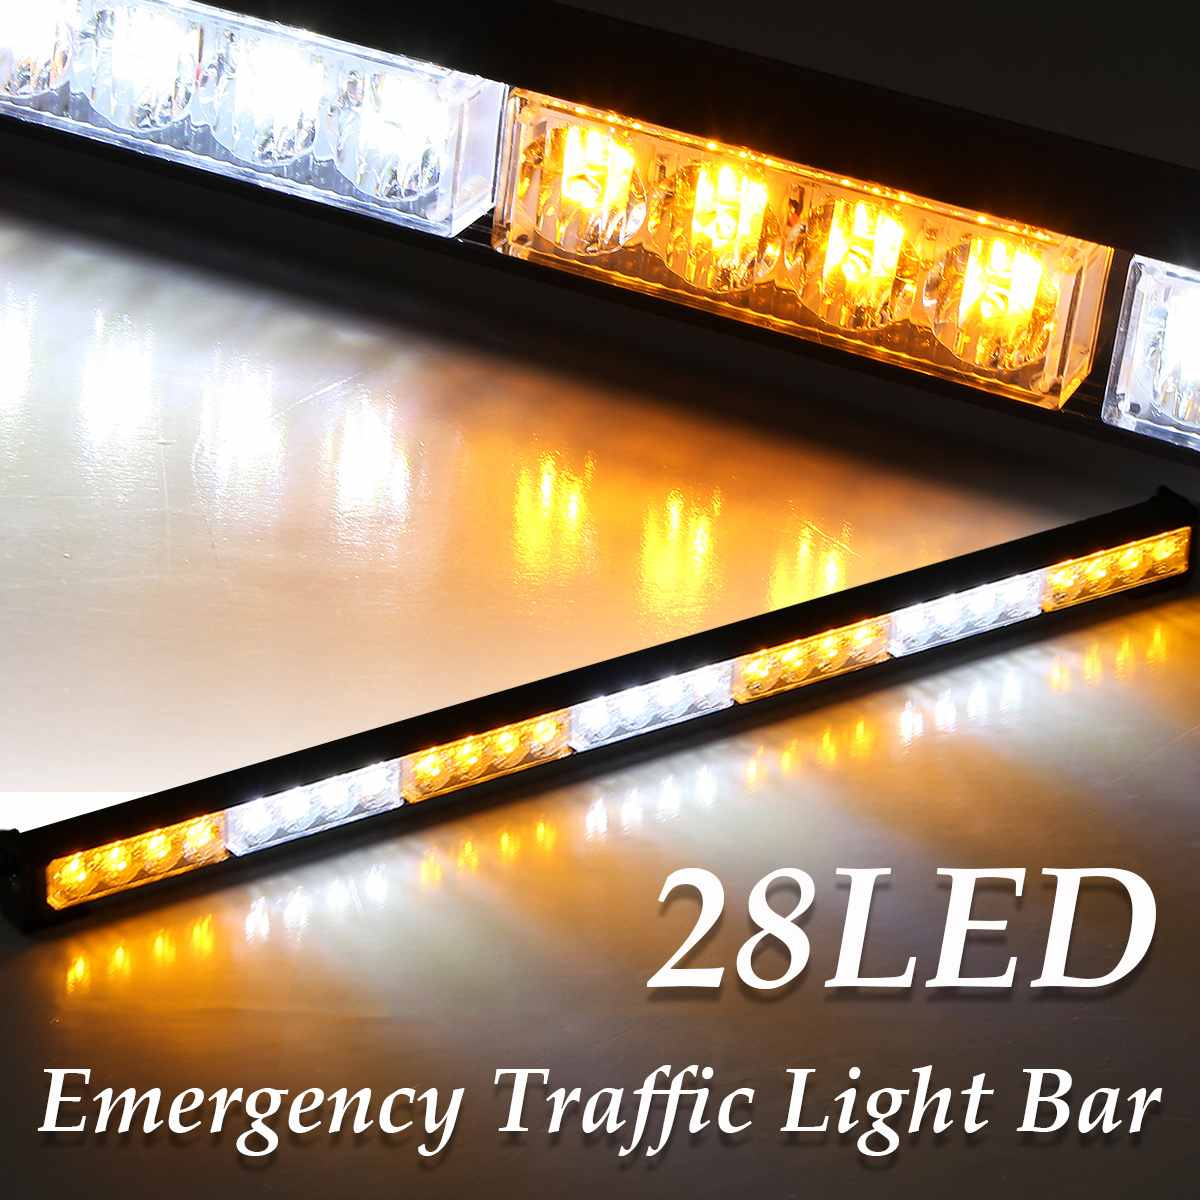 31inch 28 LED Emergency Light Bar for Car Vehicle Amber White Color 12V with Switch Professional Car Flash Emergency Light31inch 28 LED Emergency Light Bar for Car Vehicle Amber White Color 12V with Switch Professional Car Flash Emergency Light